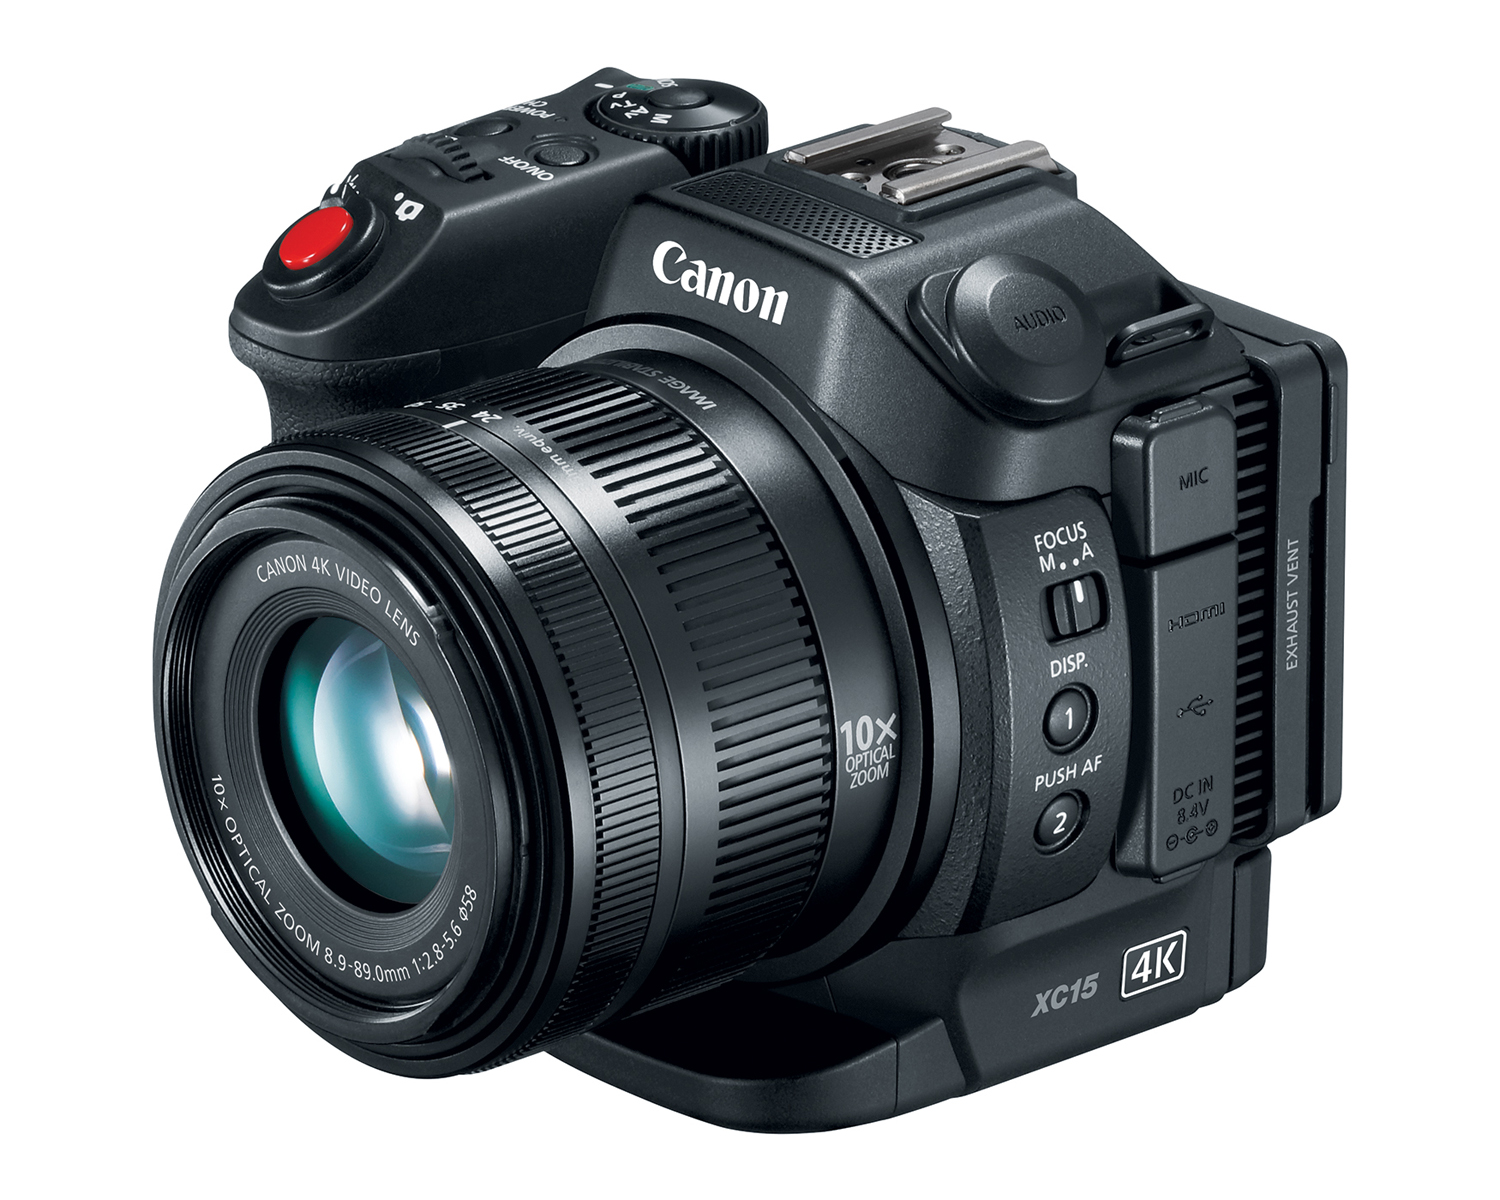 Camera Best Dslr Camera Professional canon professional camera price list best digital slr reviews announce xc15 4k uhd video camcorder canonwatch